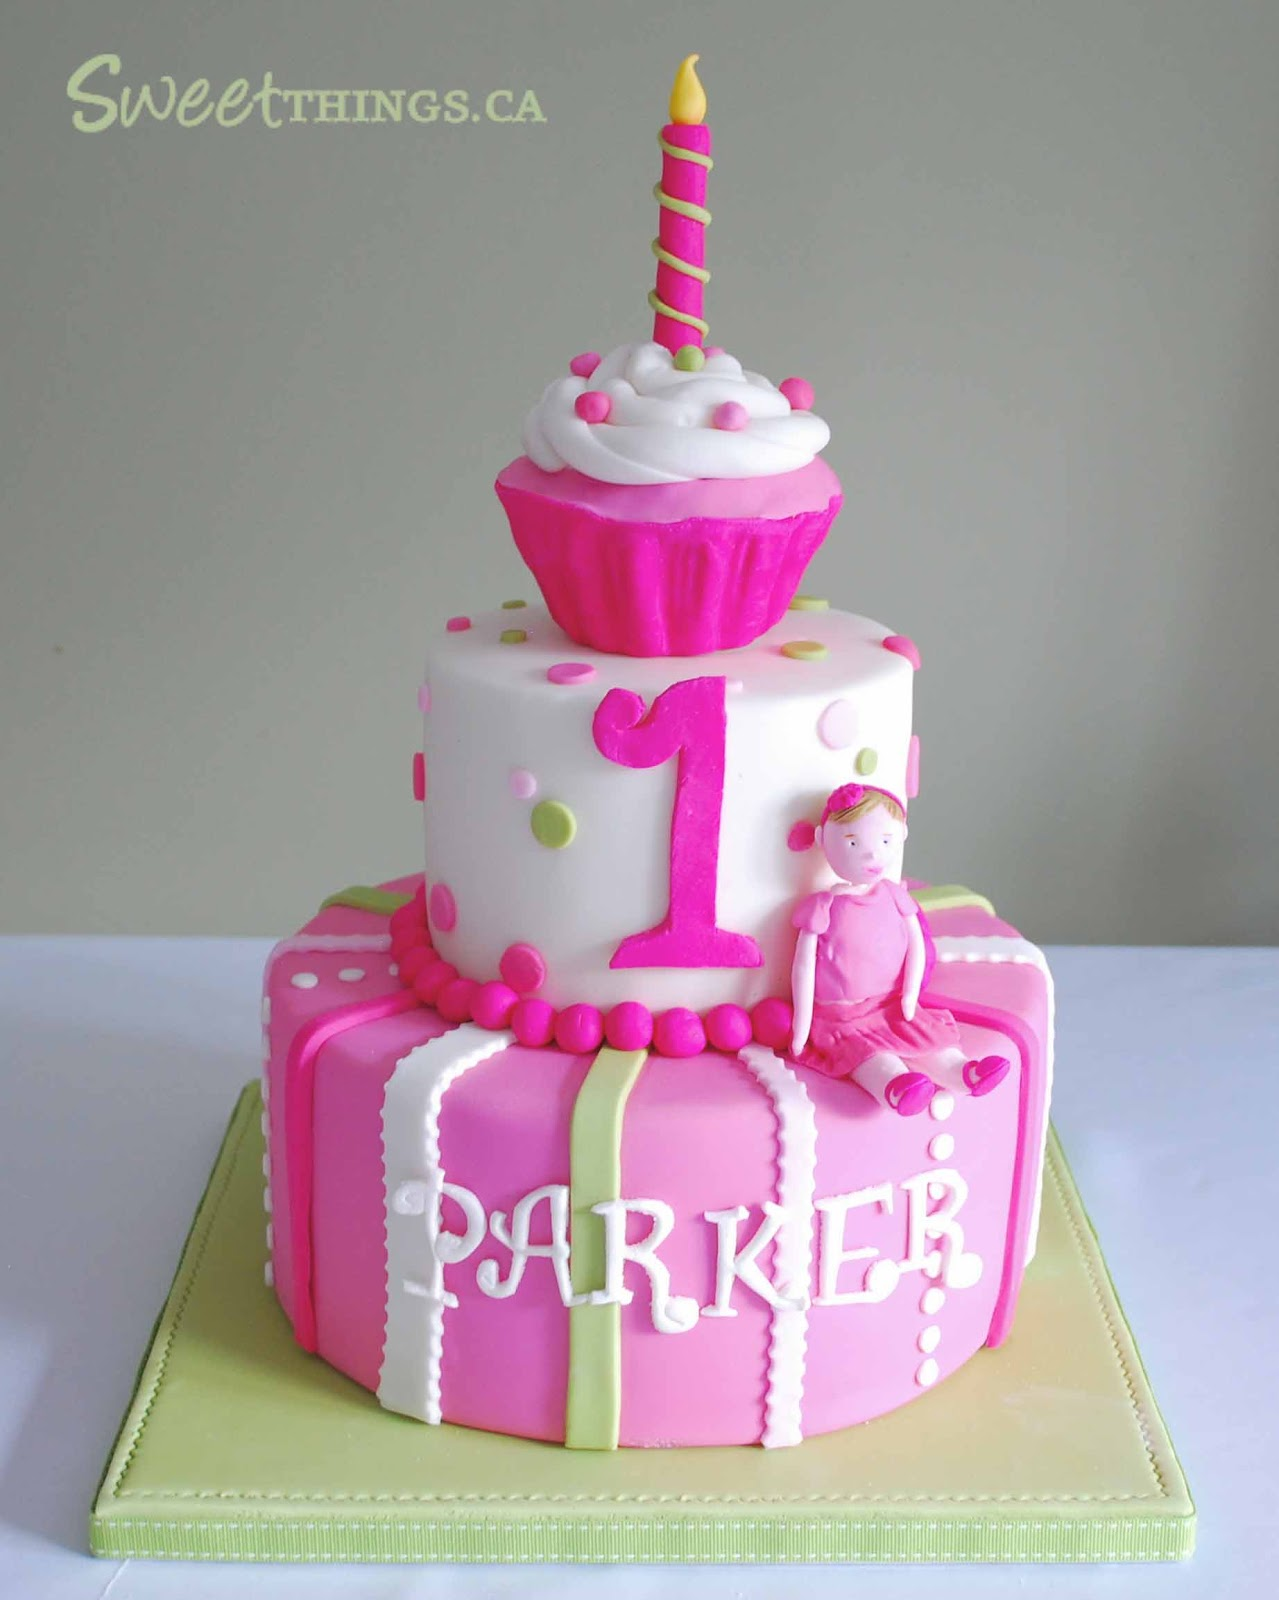 Birthday Cake Ideas And Pictures : SweetThings: Colorful 1st Birthday Cake